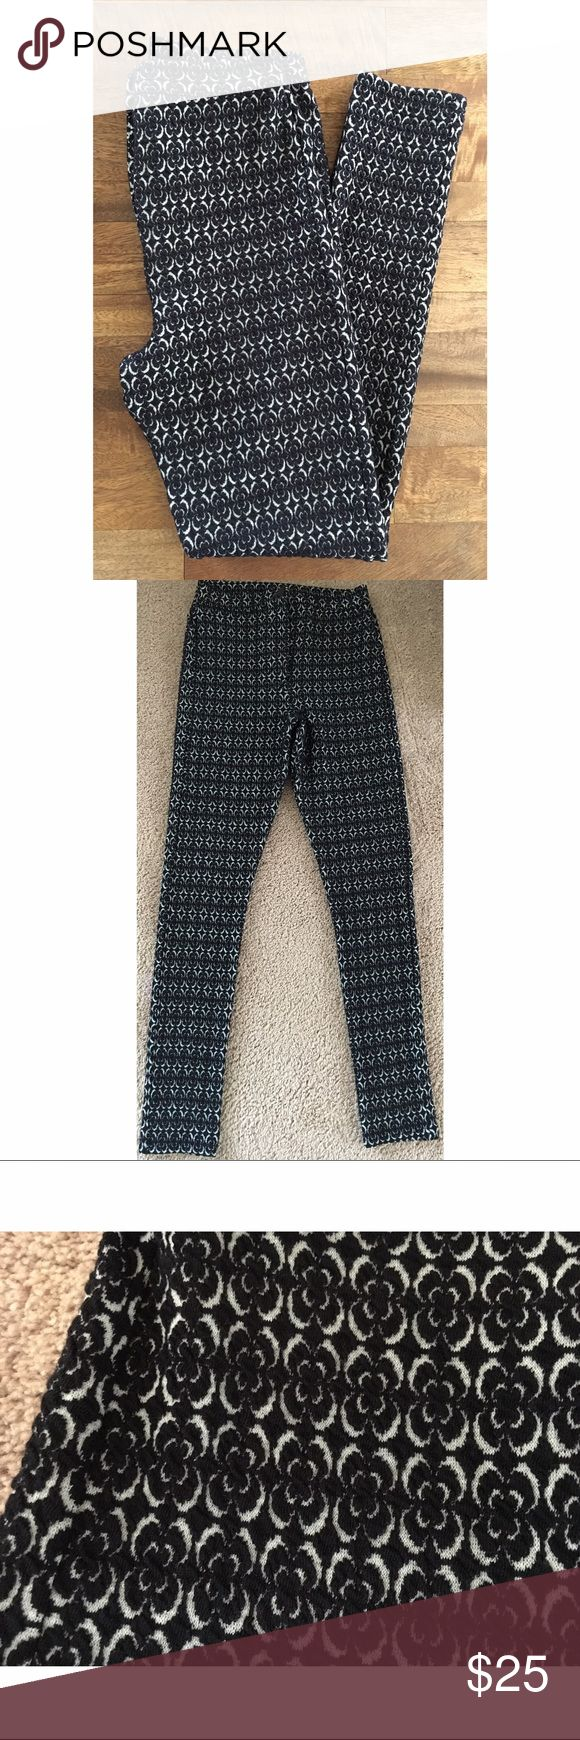 """Topshop leggings brand new size 8/28 Topshop leggings brand new from Nordstrom. These leggings have never been worn but do not have the tags. Measurements: 28"""" inseam 12 1/2"""" rise 12"""" waist 55% polyester 44% cotton 1% elastane. Topshop Pants Leggings"""